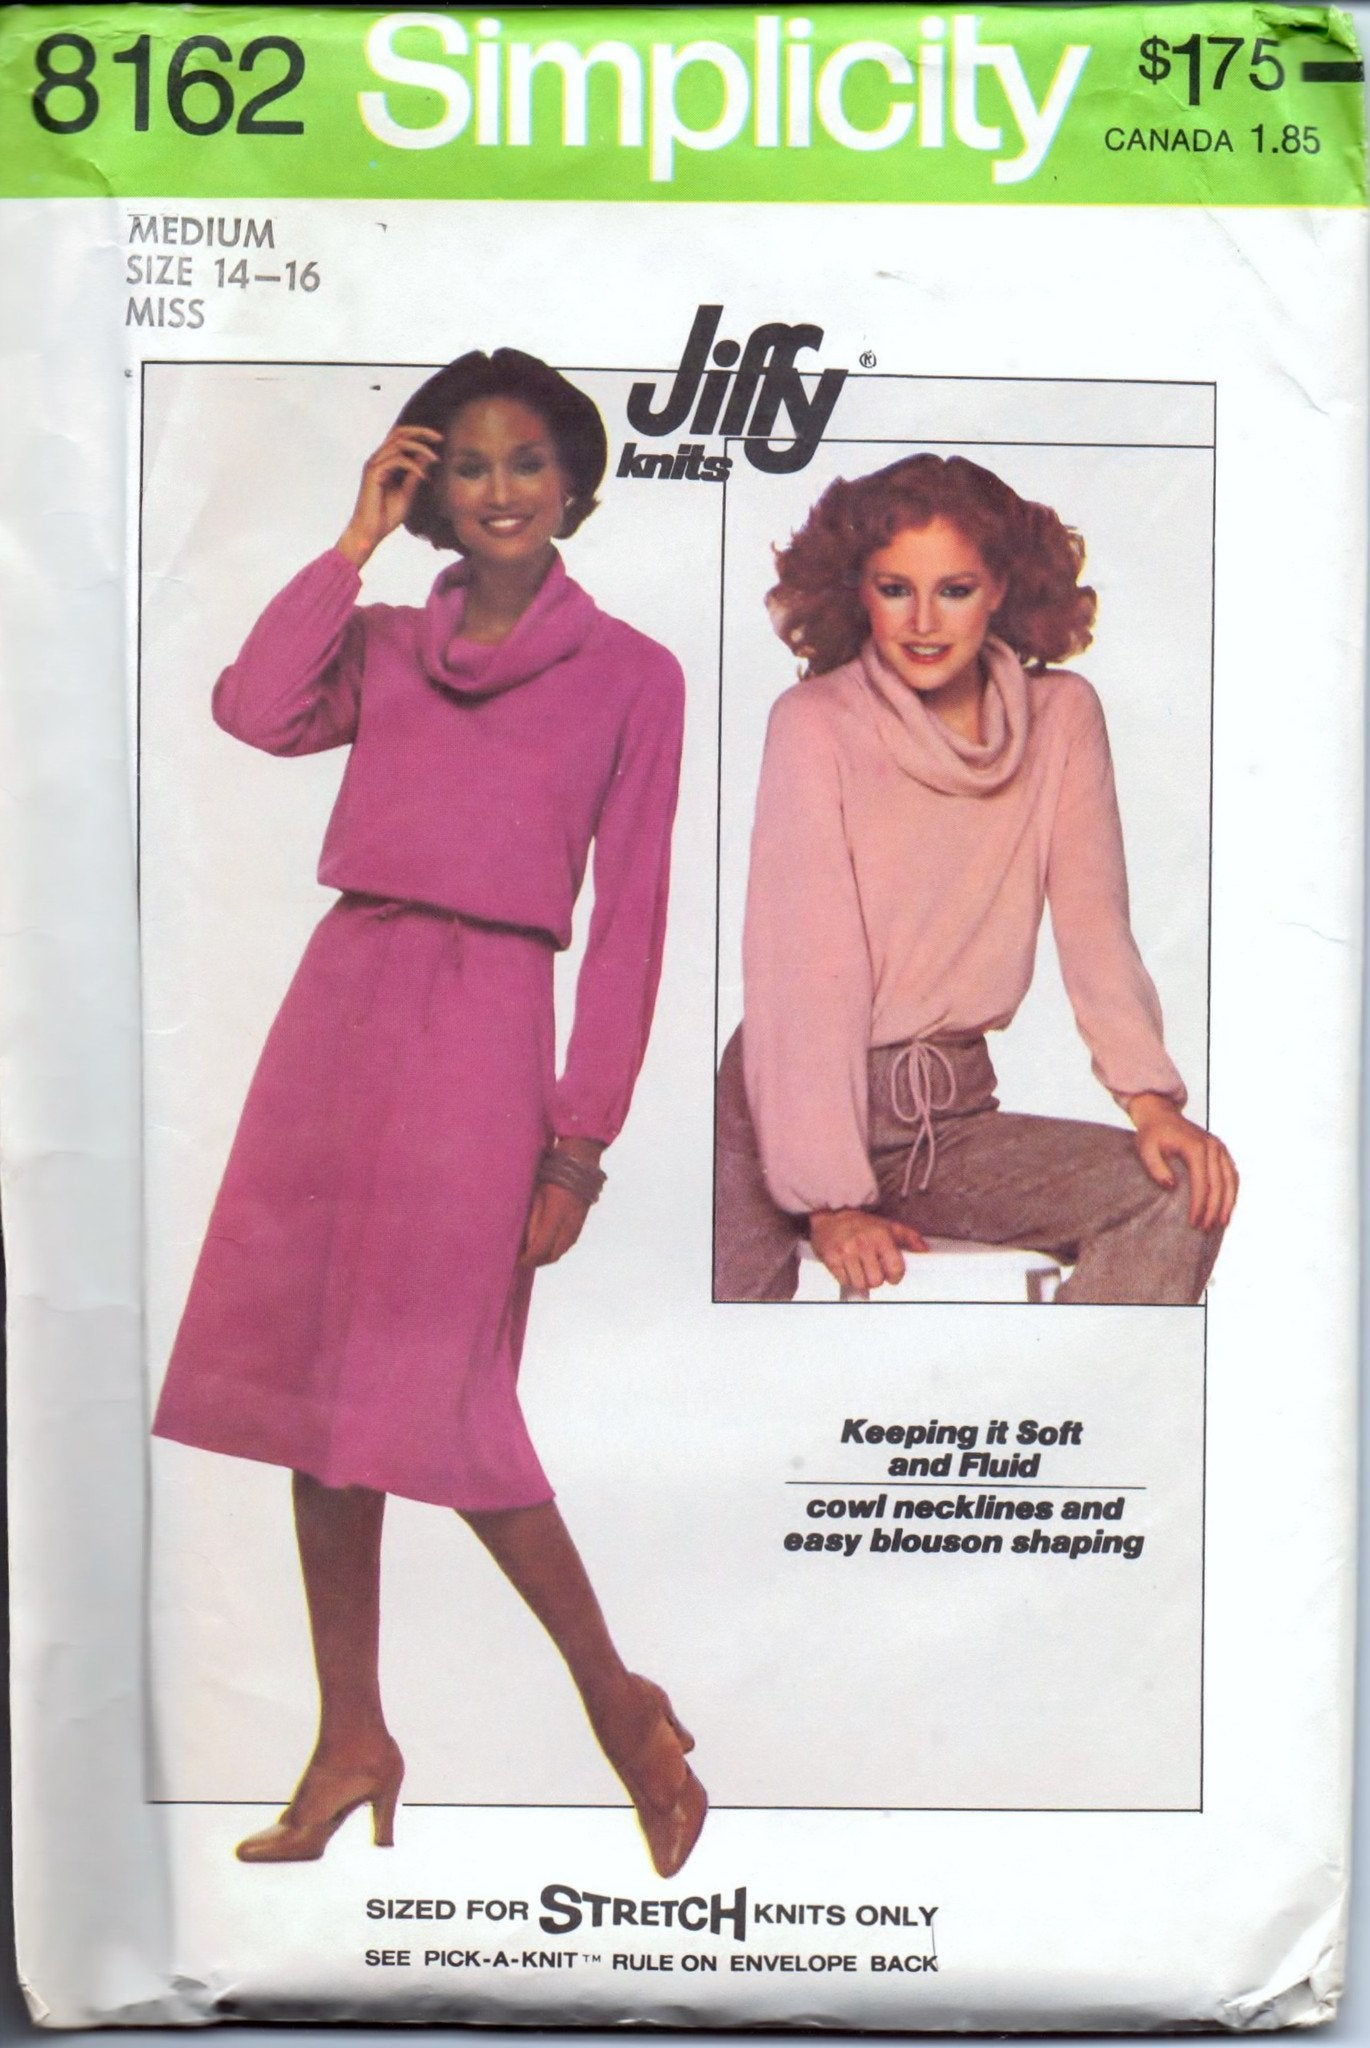 Simplicity 8162 Ladies Separates Top Skirt Vintage 1970's Sewing Pattern - VintageStitching - Vintage Sewing Patterns